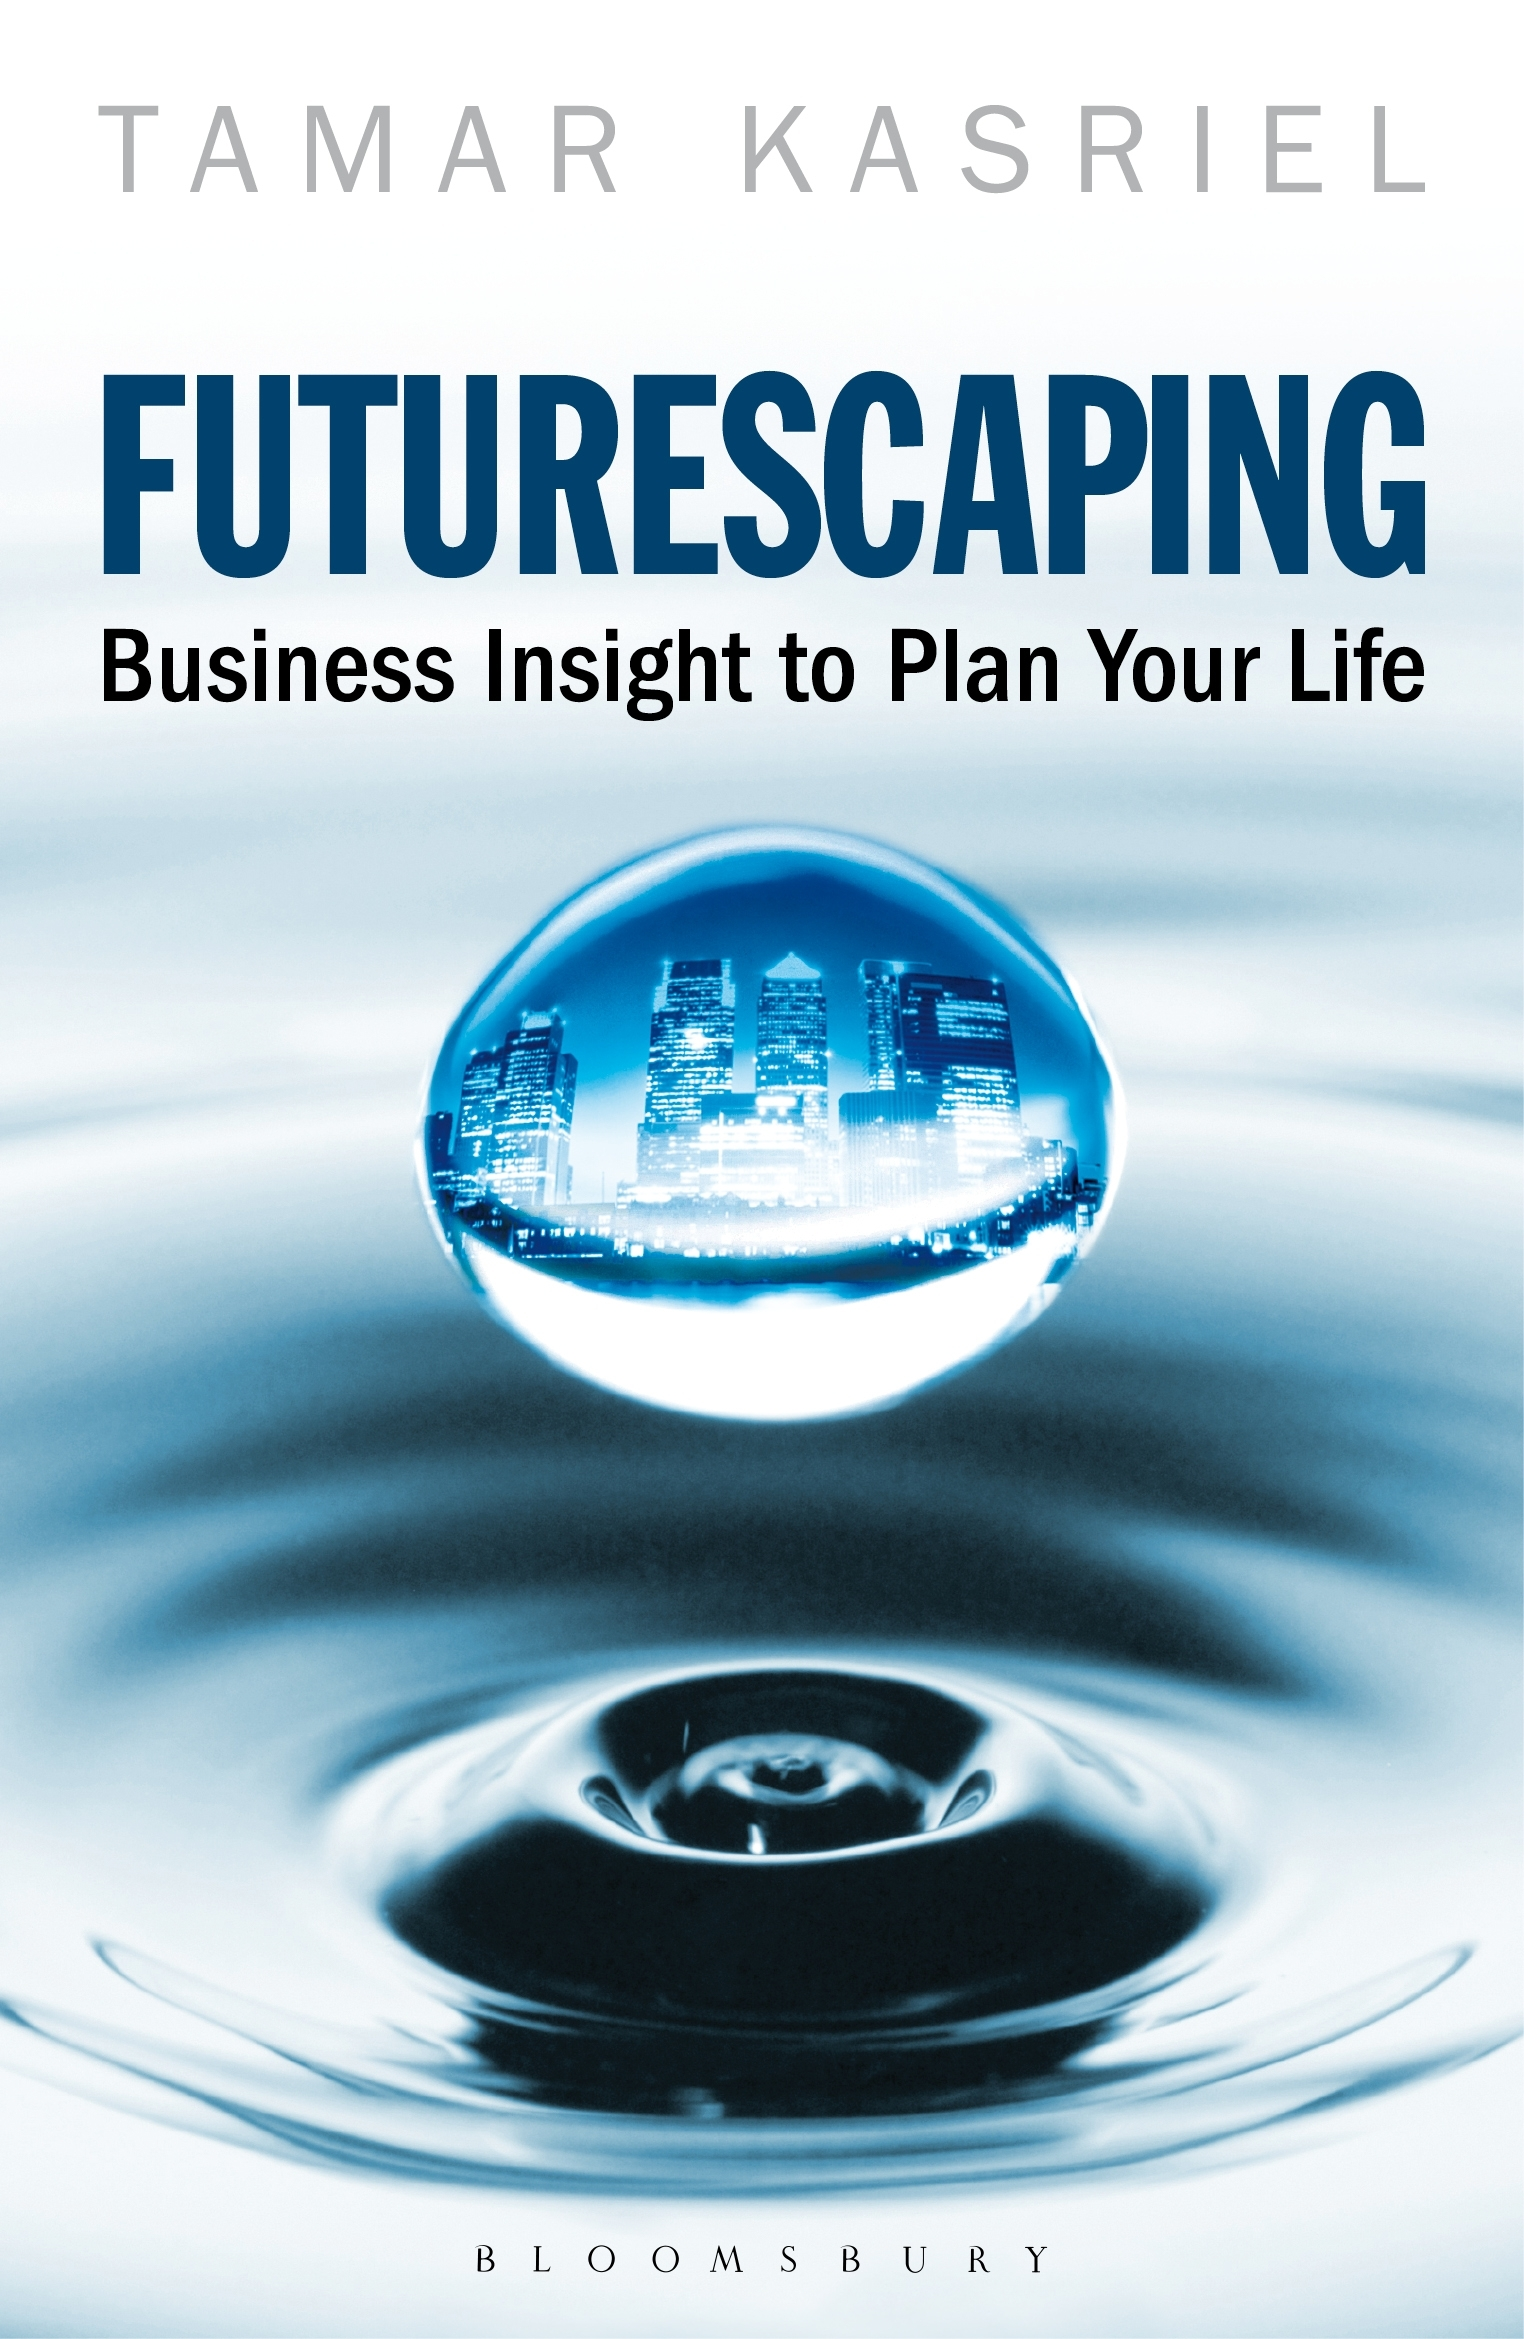 Futurescaping Using Business Insight to Plan Your Life